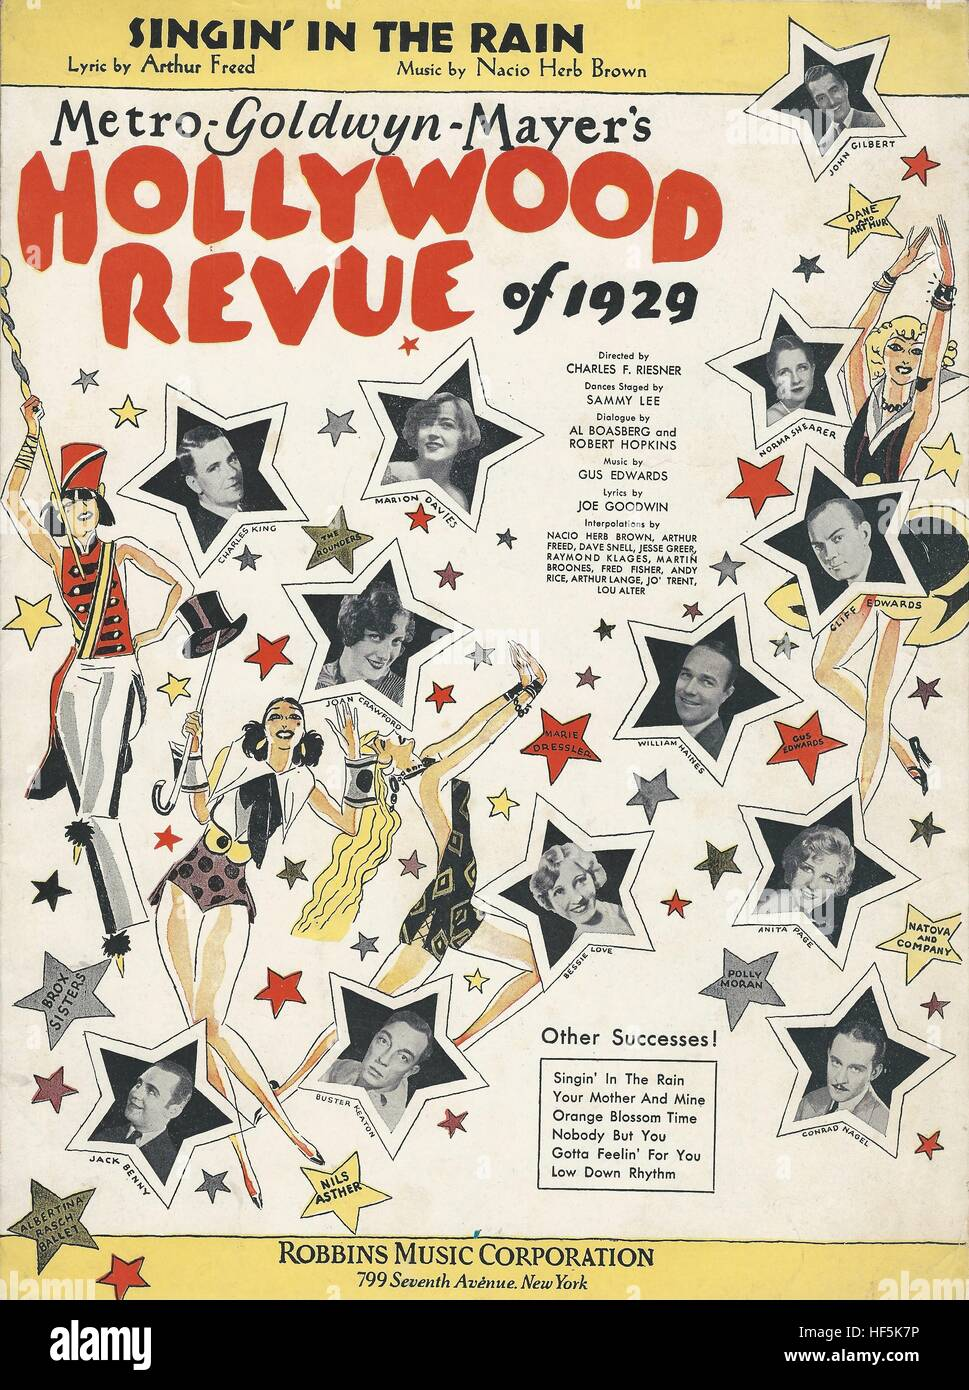 'Hollywood Revue of 1929' 1929 movie Sheet Music Cover - Stock Image